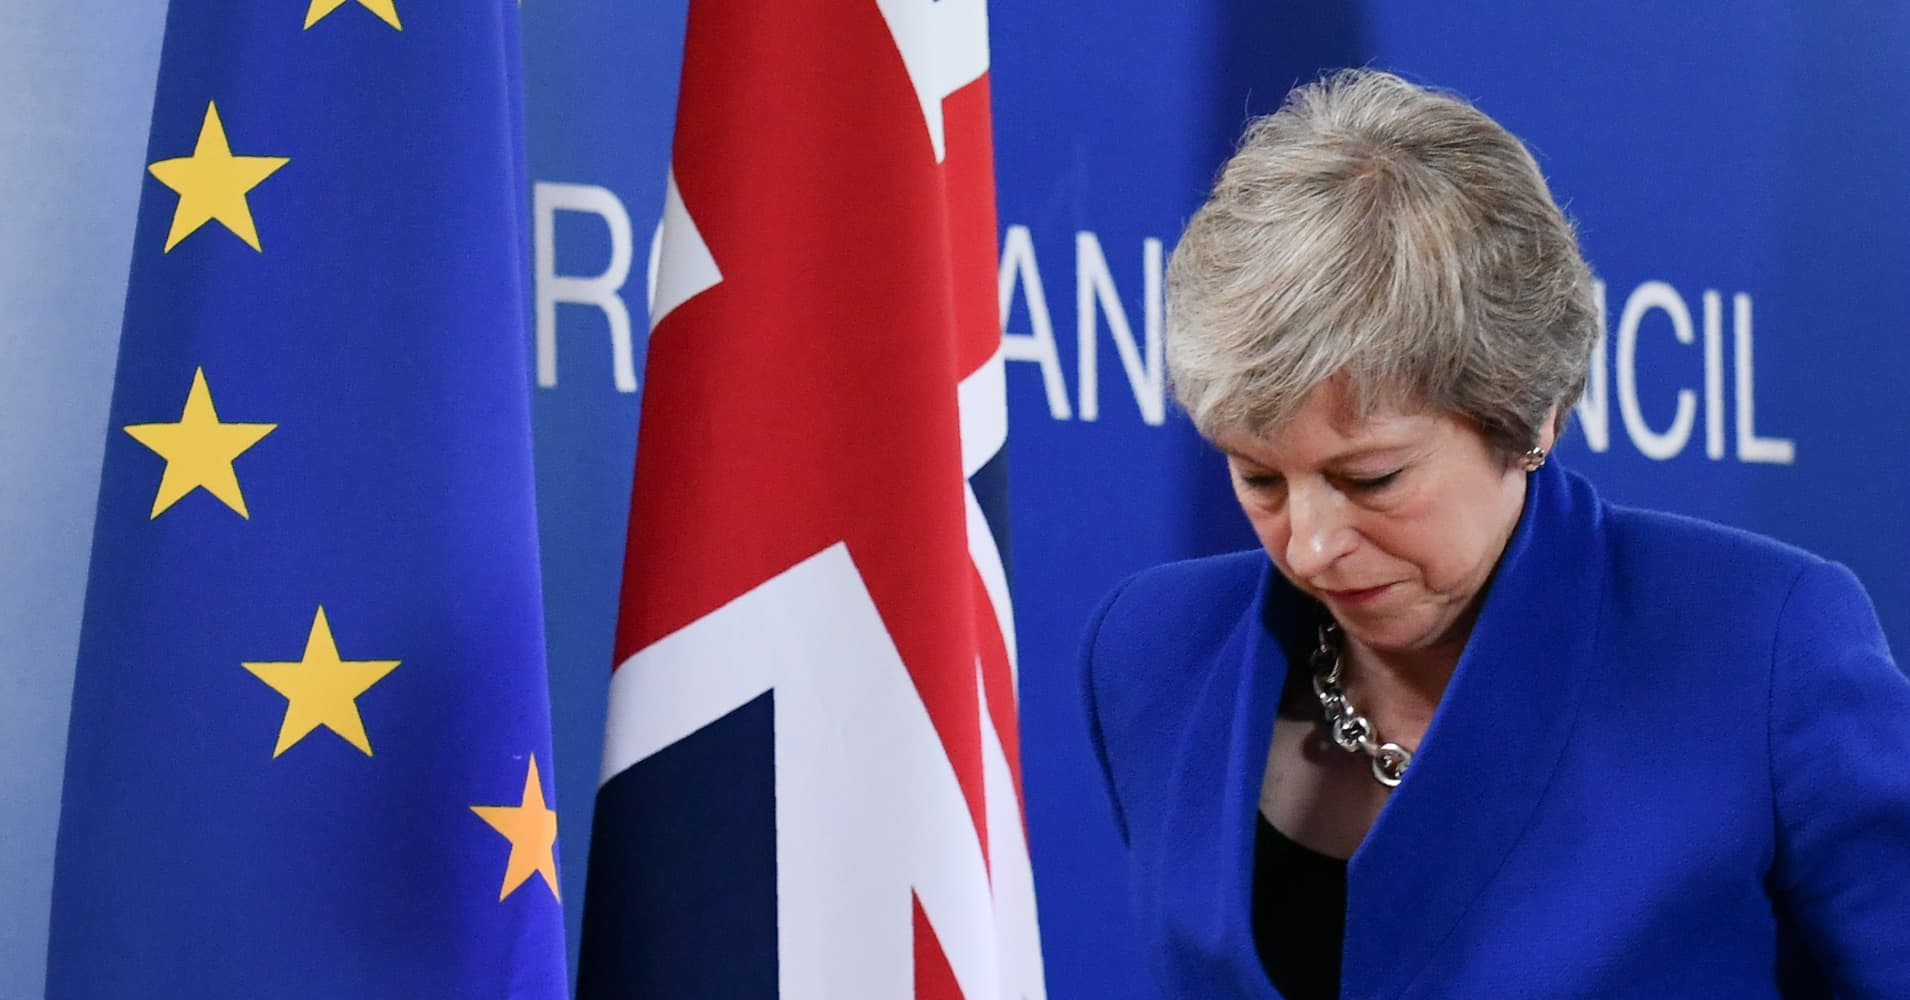 European markets climb higher; British PM set to face leadership challenge; Colruyt shares jump 8%